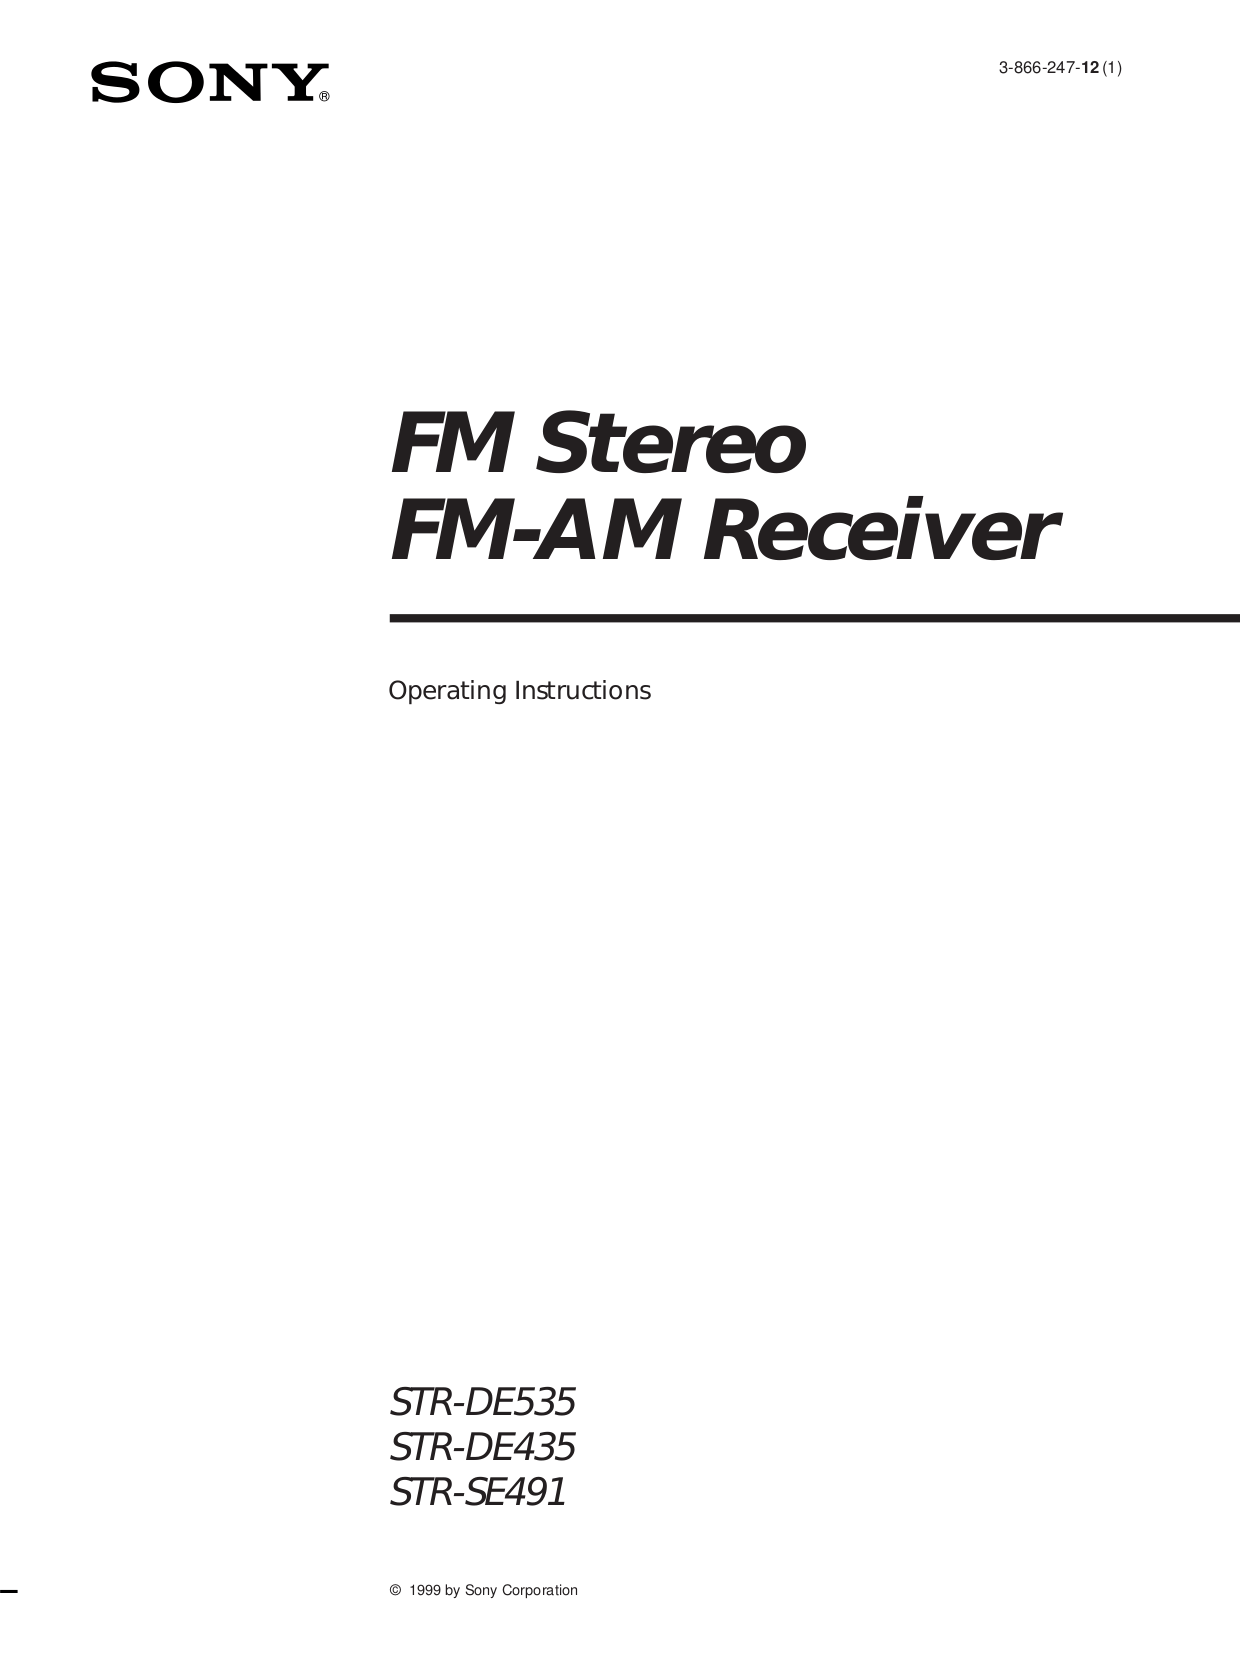 Download free pdf for Sony STR-DE475 Receiver manual